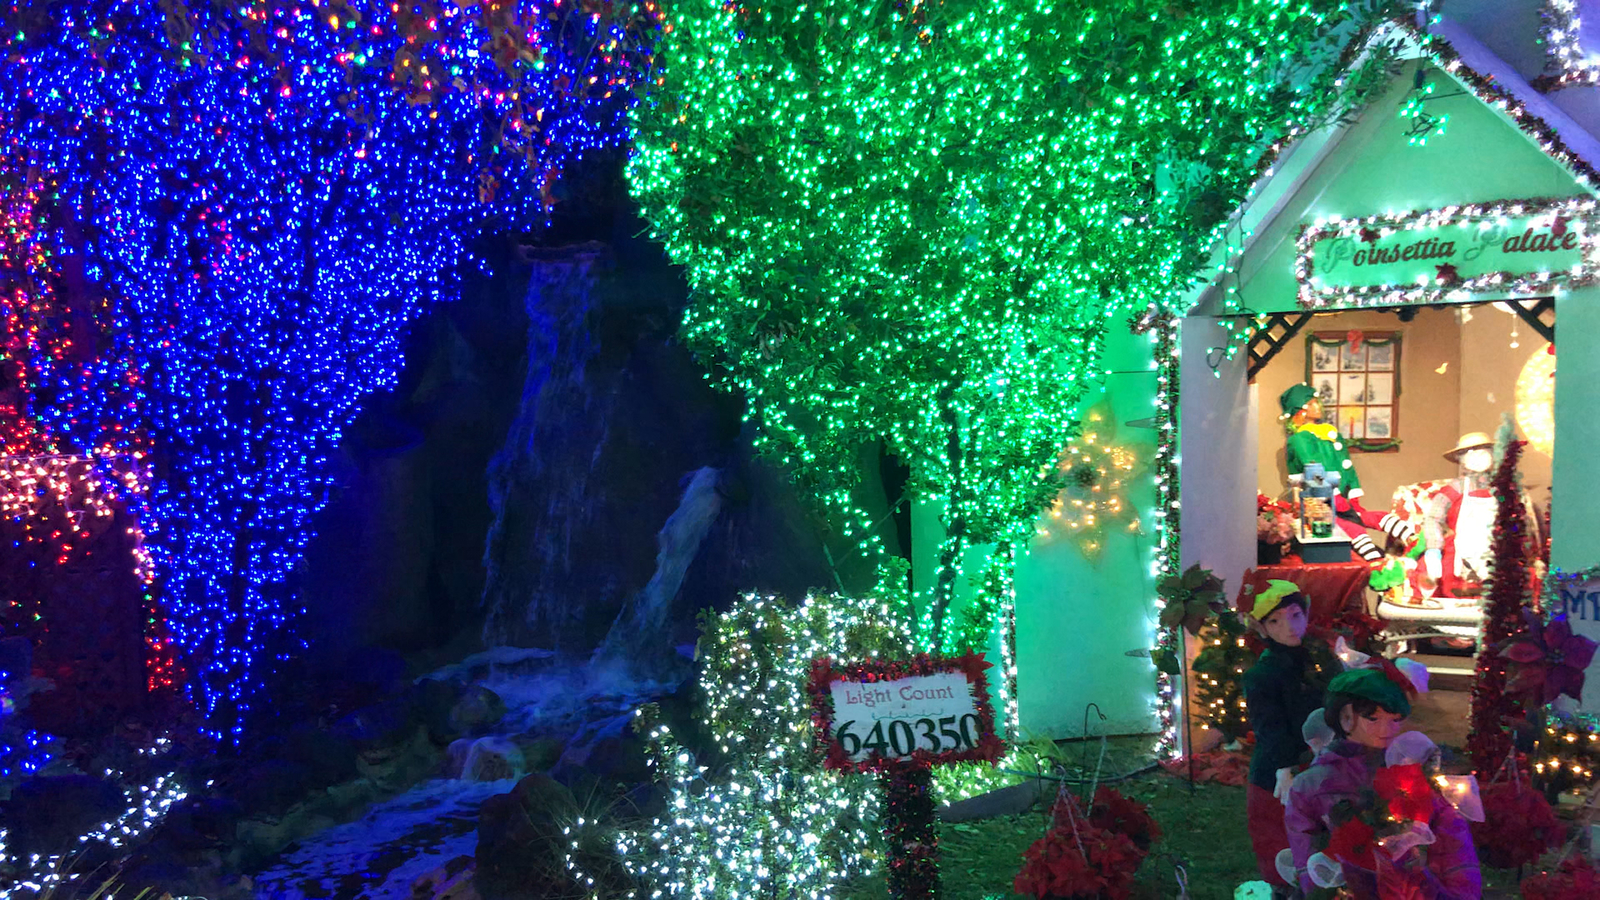 Livermore Christmas Parade 2021 Deacon Dave S Home In Livermore Dazzles With Over 600 000 Christmas Lights Abc7 San Francisco